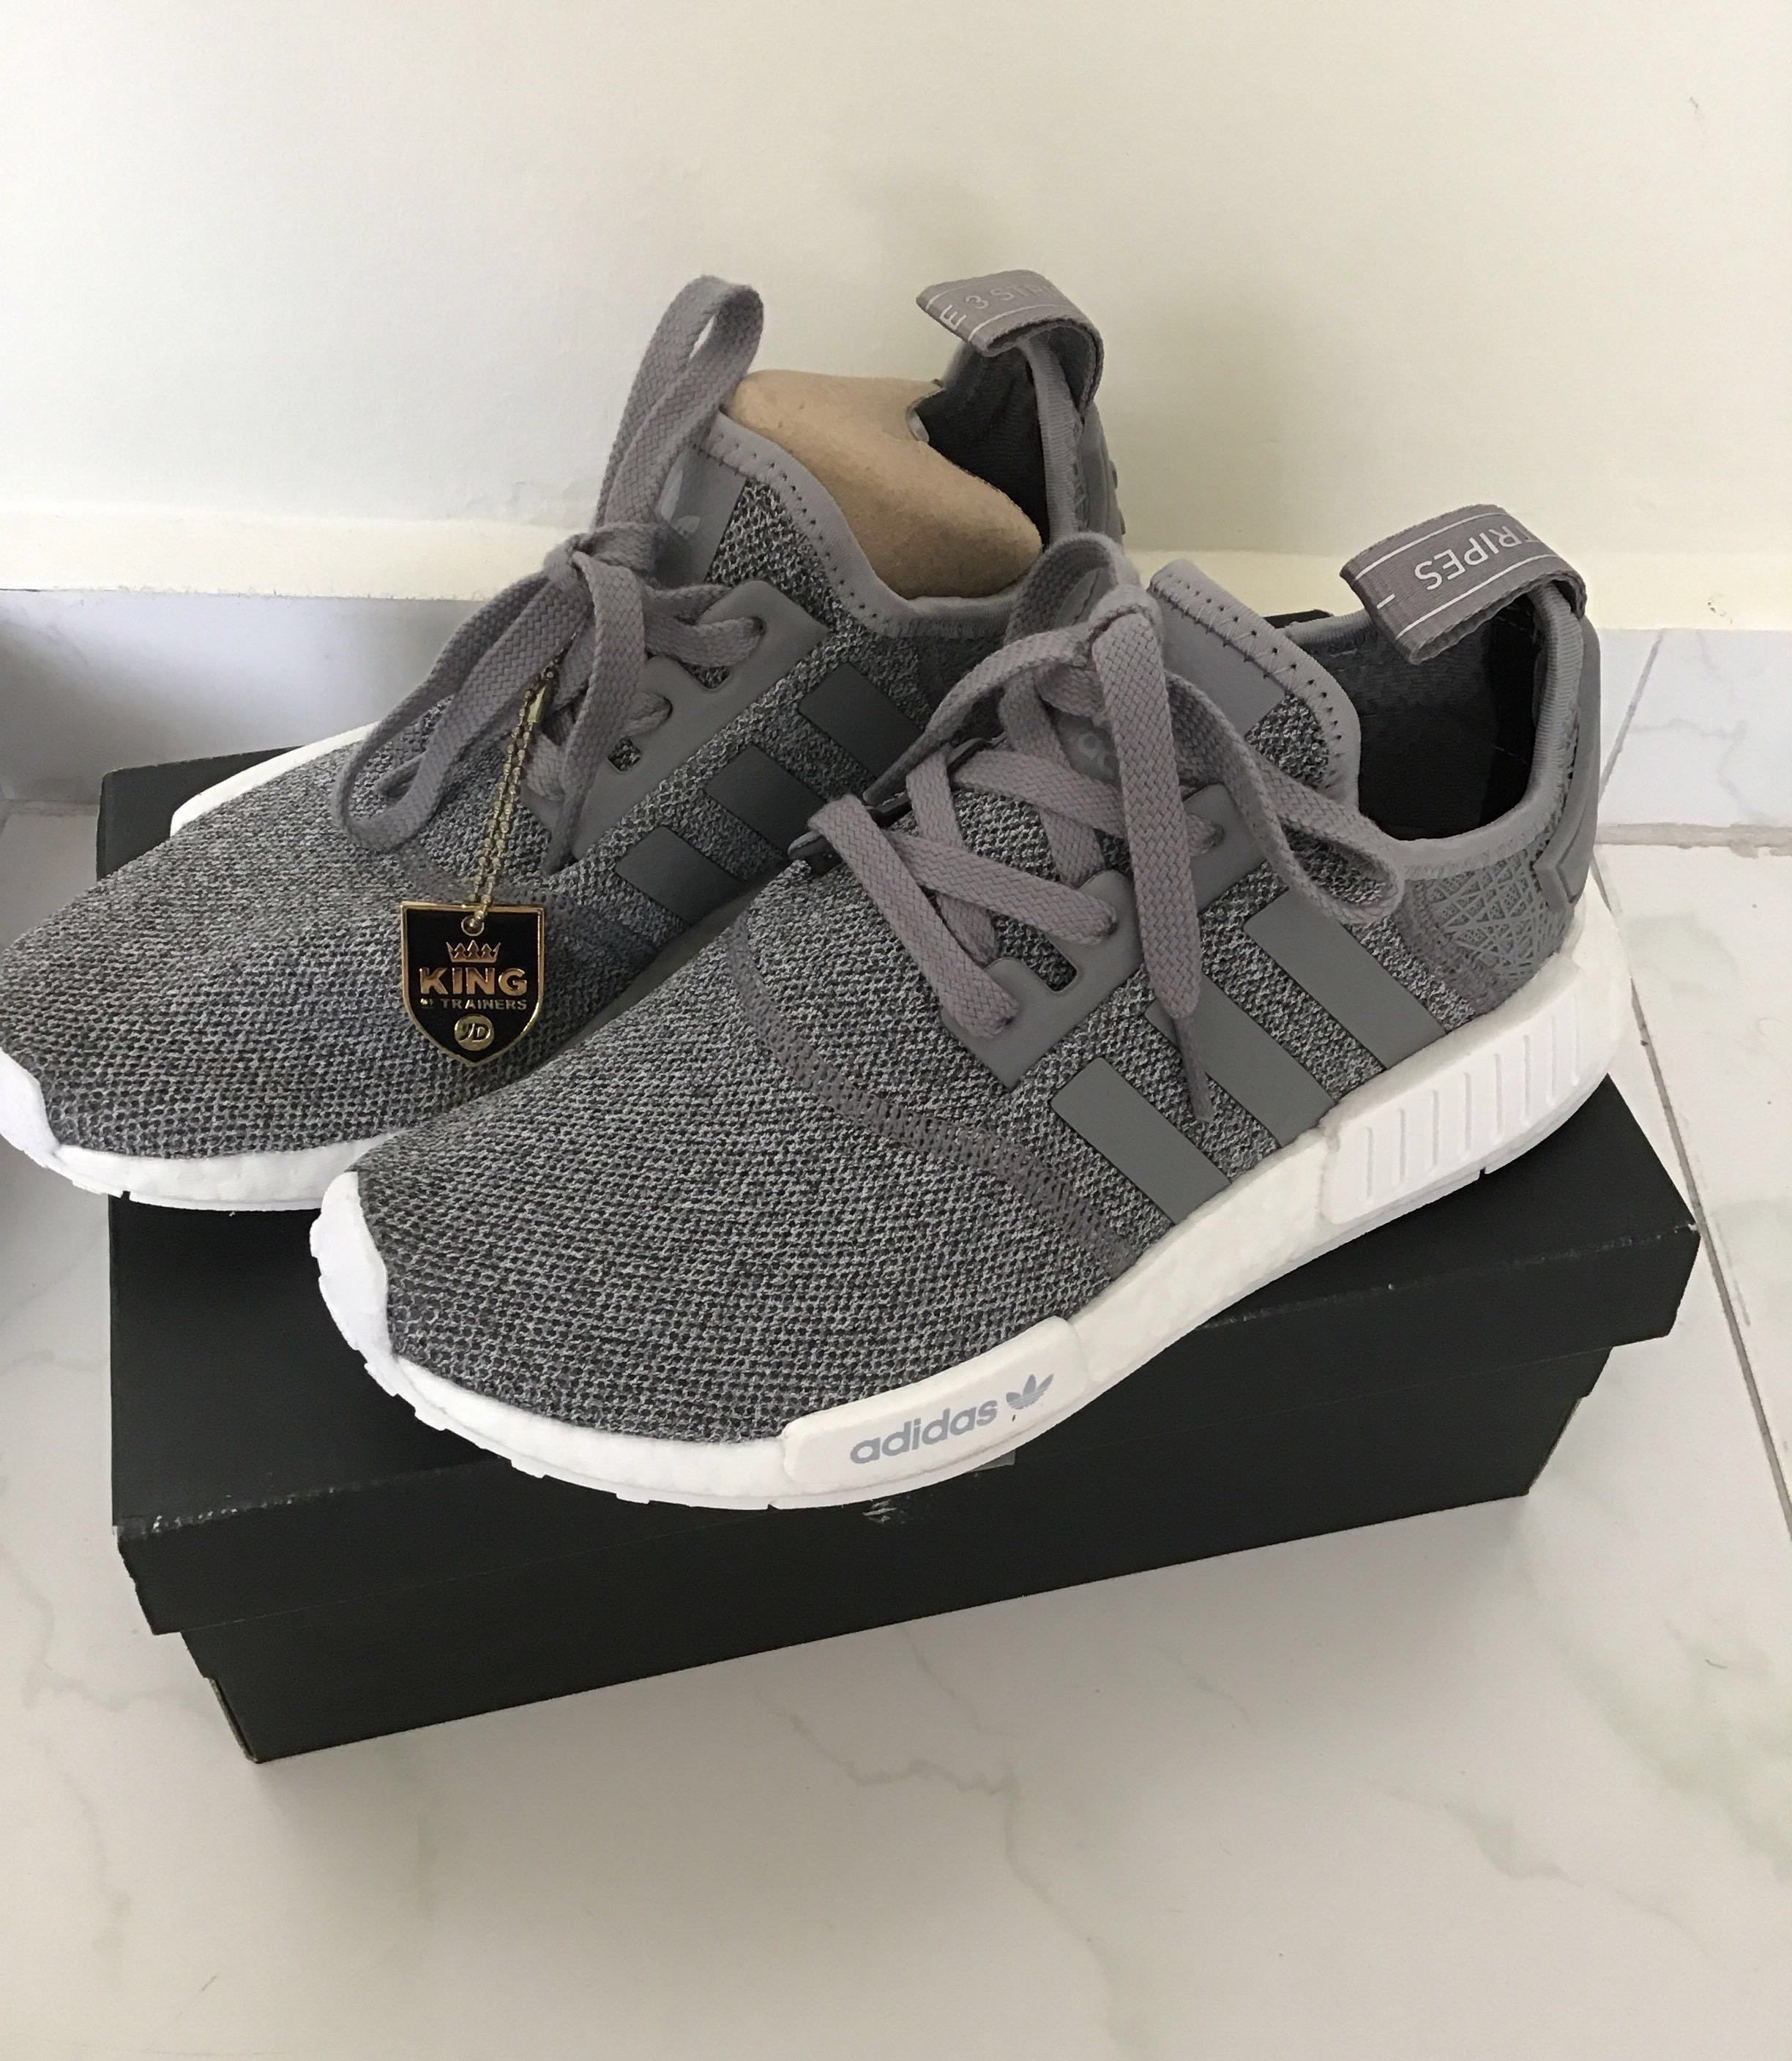 6cfc0b90 Adidas Originals NMD R1 Grey, Women's Fashion, Shoes, Sneakers on ...